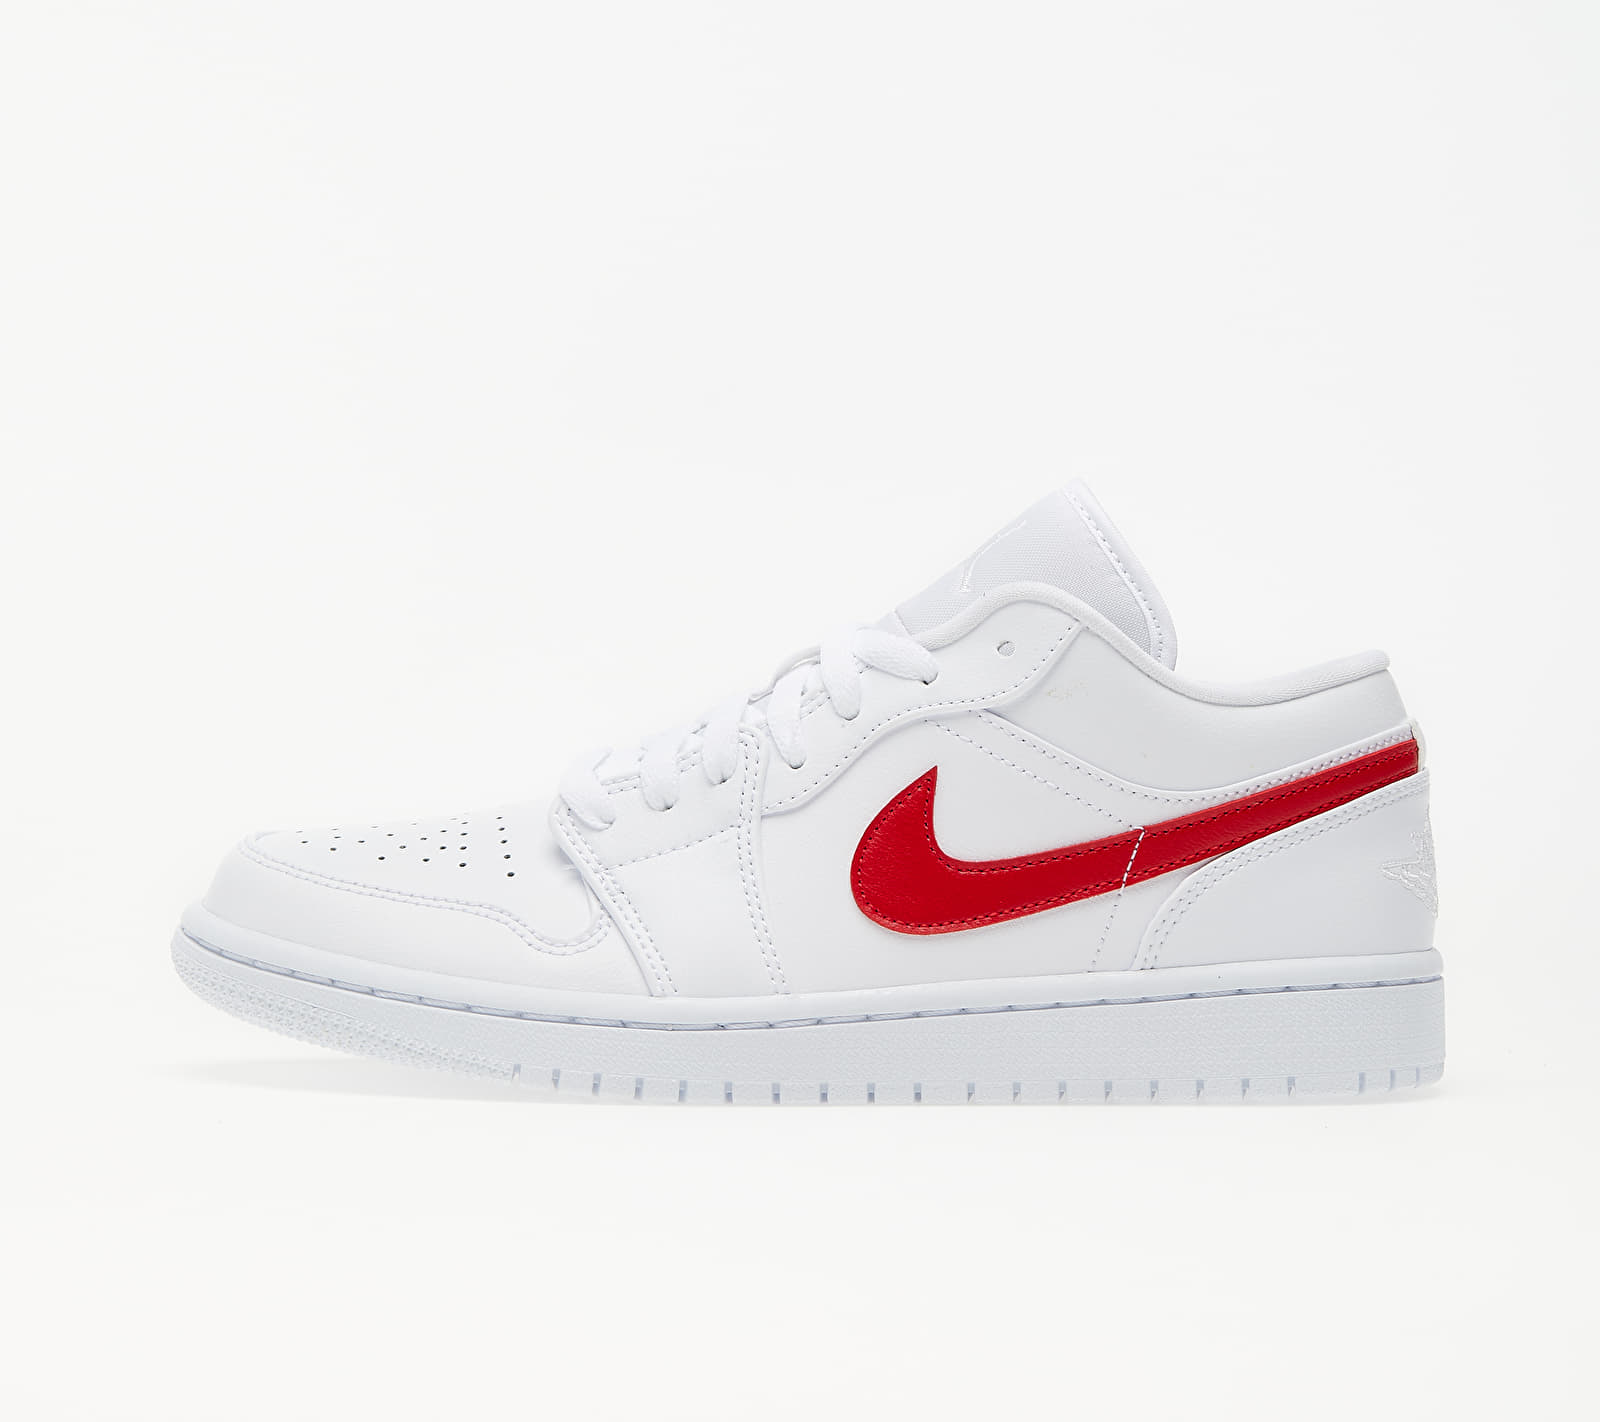 Jordan Wmns Air 1 Low White/ University Red-White EUR 40.5